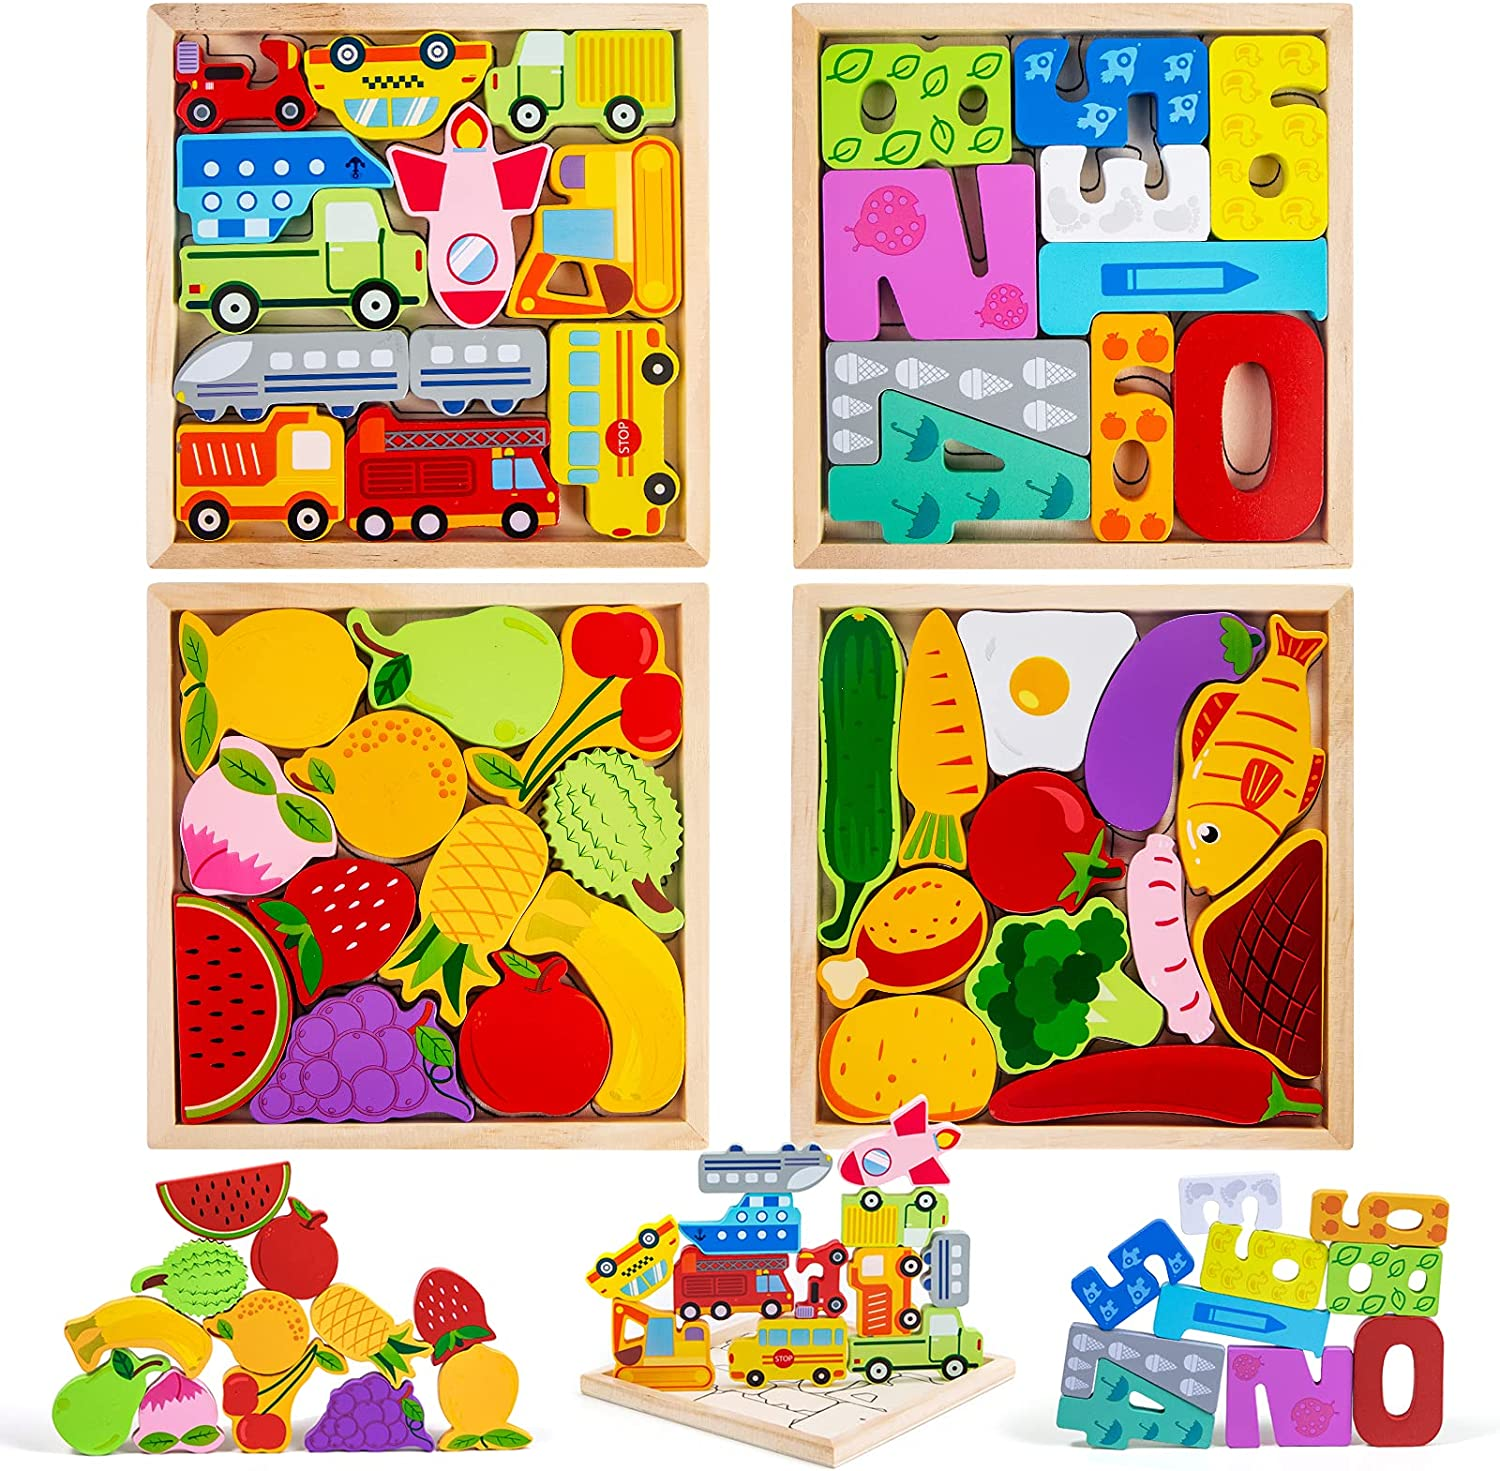 ANGSTEEP Wooden Puzzles for Toddlers 1-3 Year Old, Baby Early Learning Educational Toys, Birthday Gifts for Boys & Girls (4 Pack)